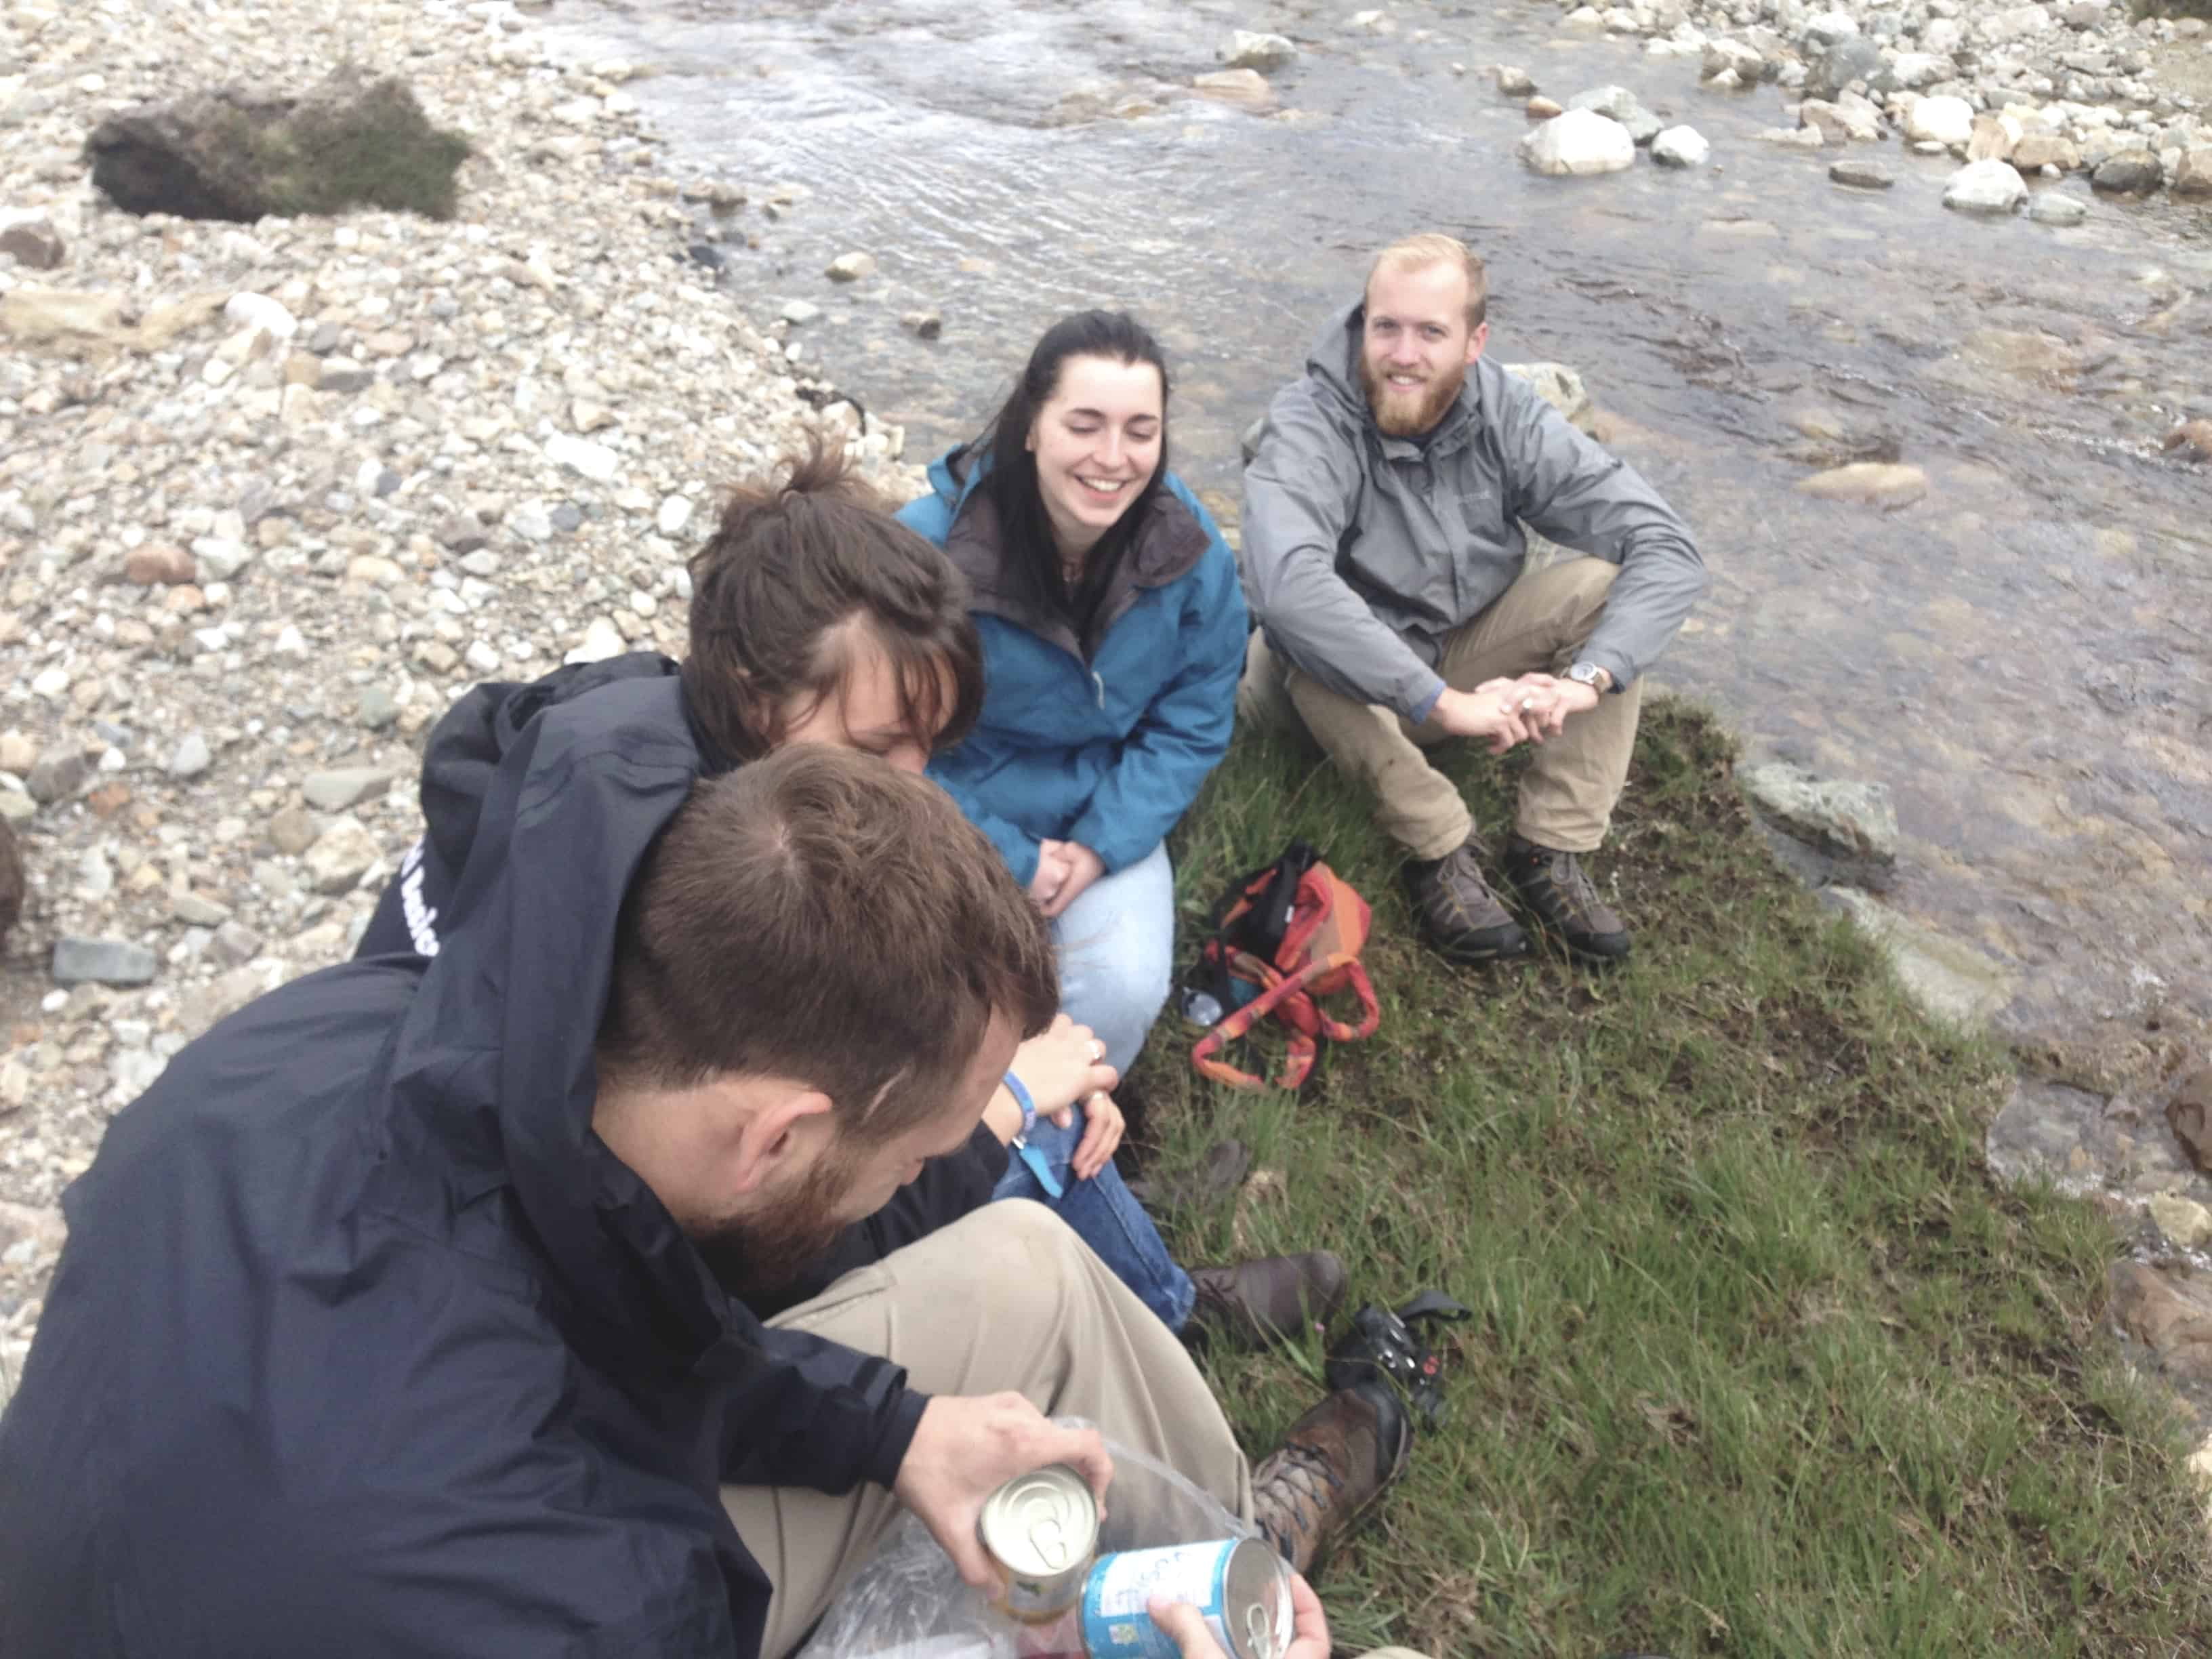 Hanging out in Connemara in Ireland eating canned beans - one of our stops while hitchhiking